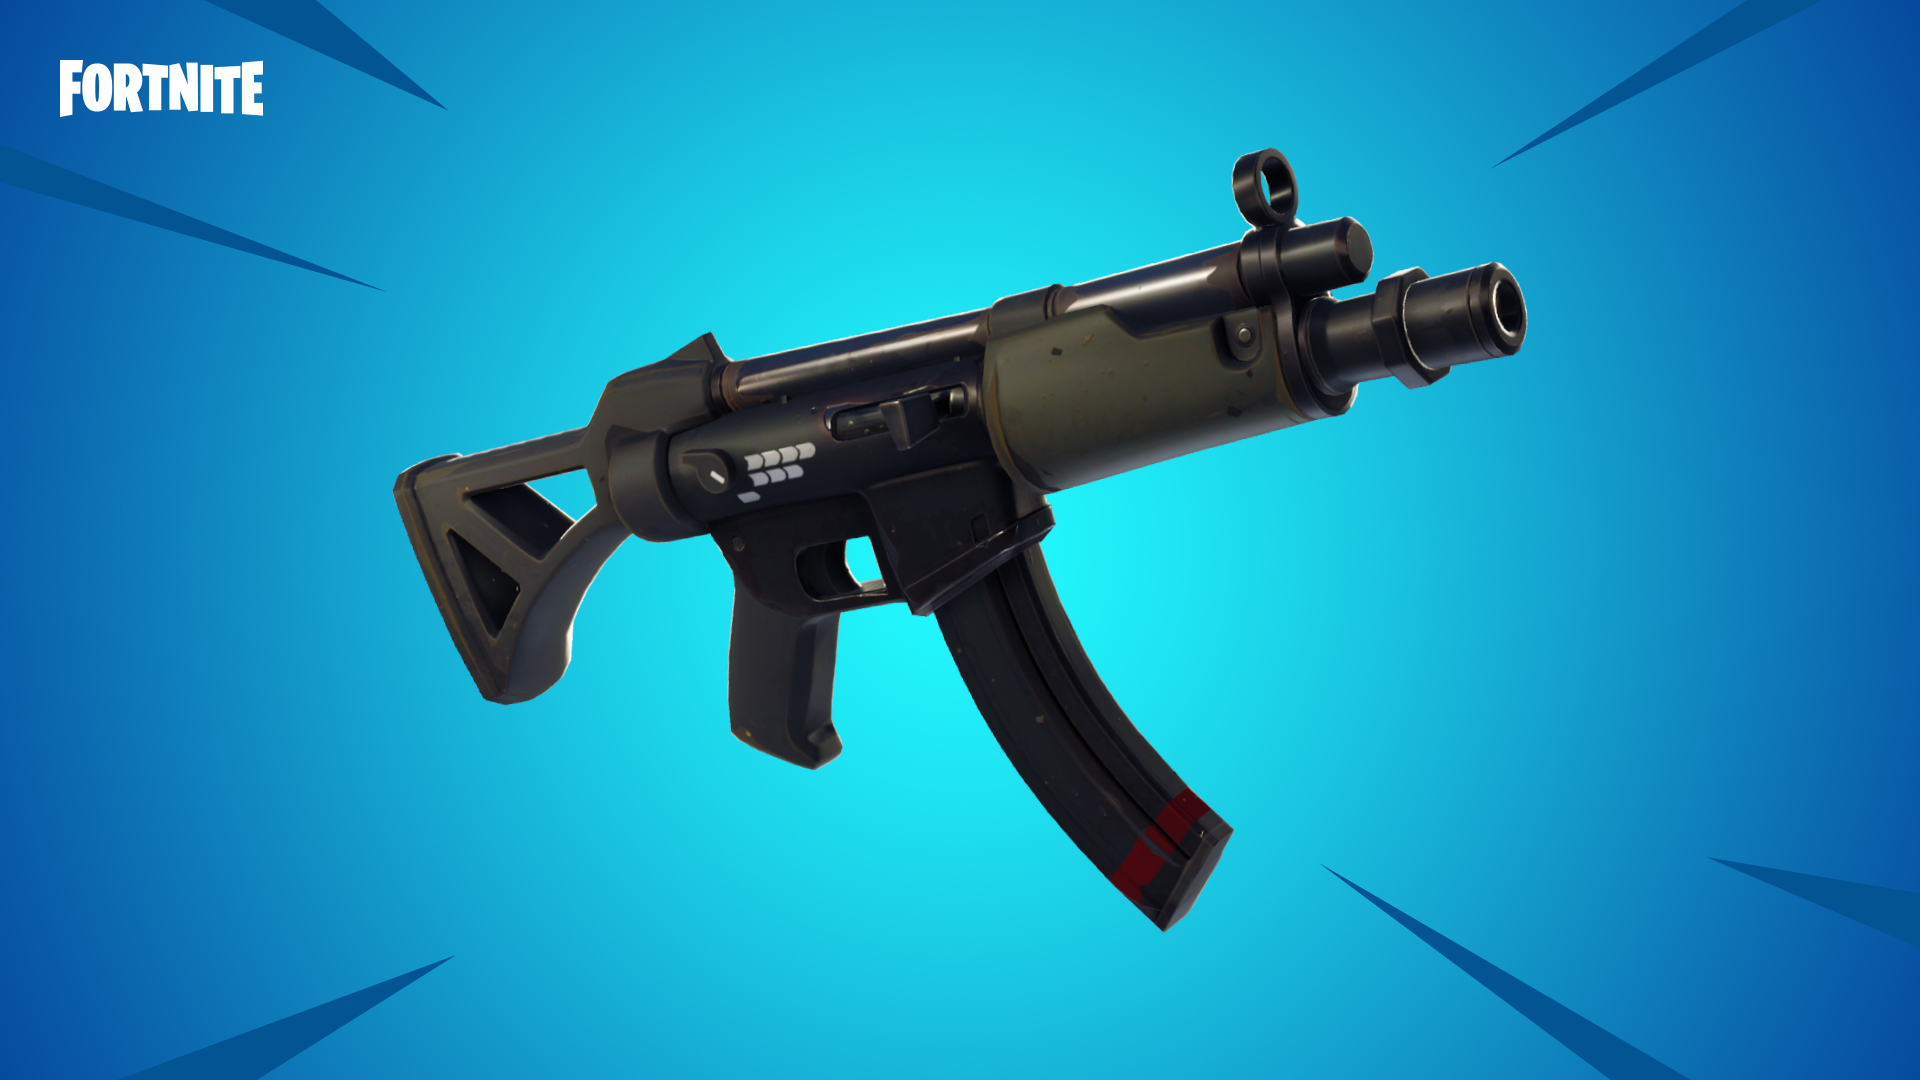 What does smg mean in fortnite